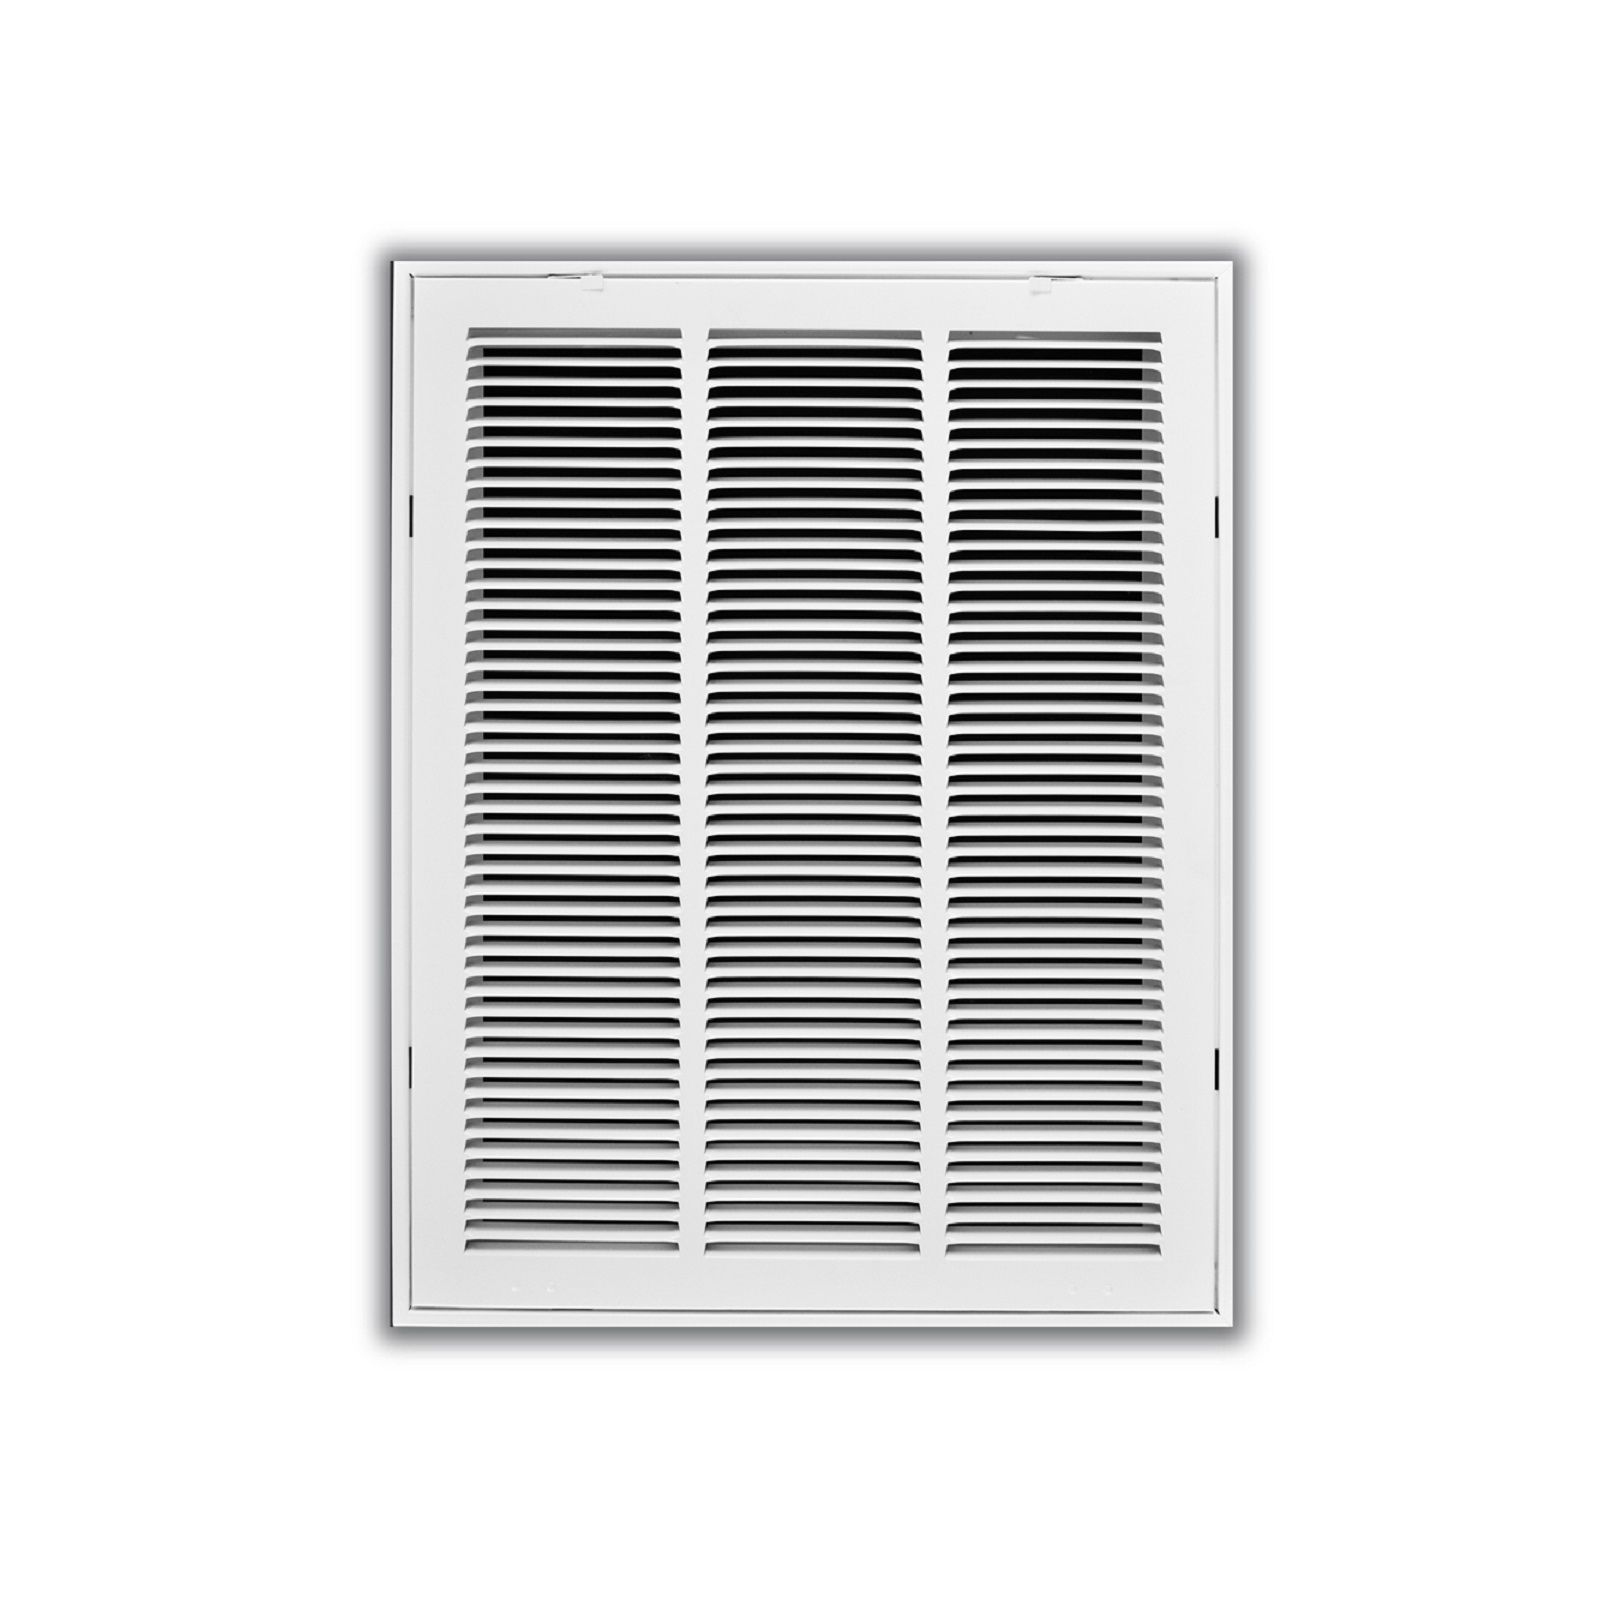 "TRUaire 190 18X18 - Steel Return Air Filter Grille With Fixed Hinged Face, White, 18"" X 18"""